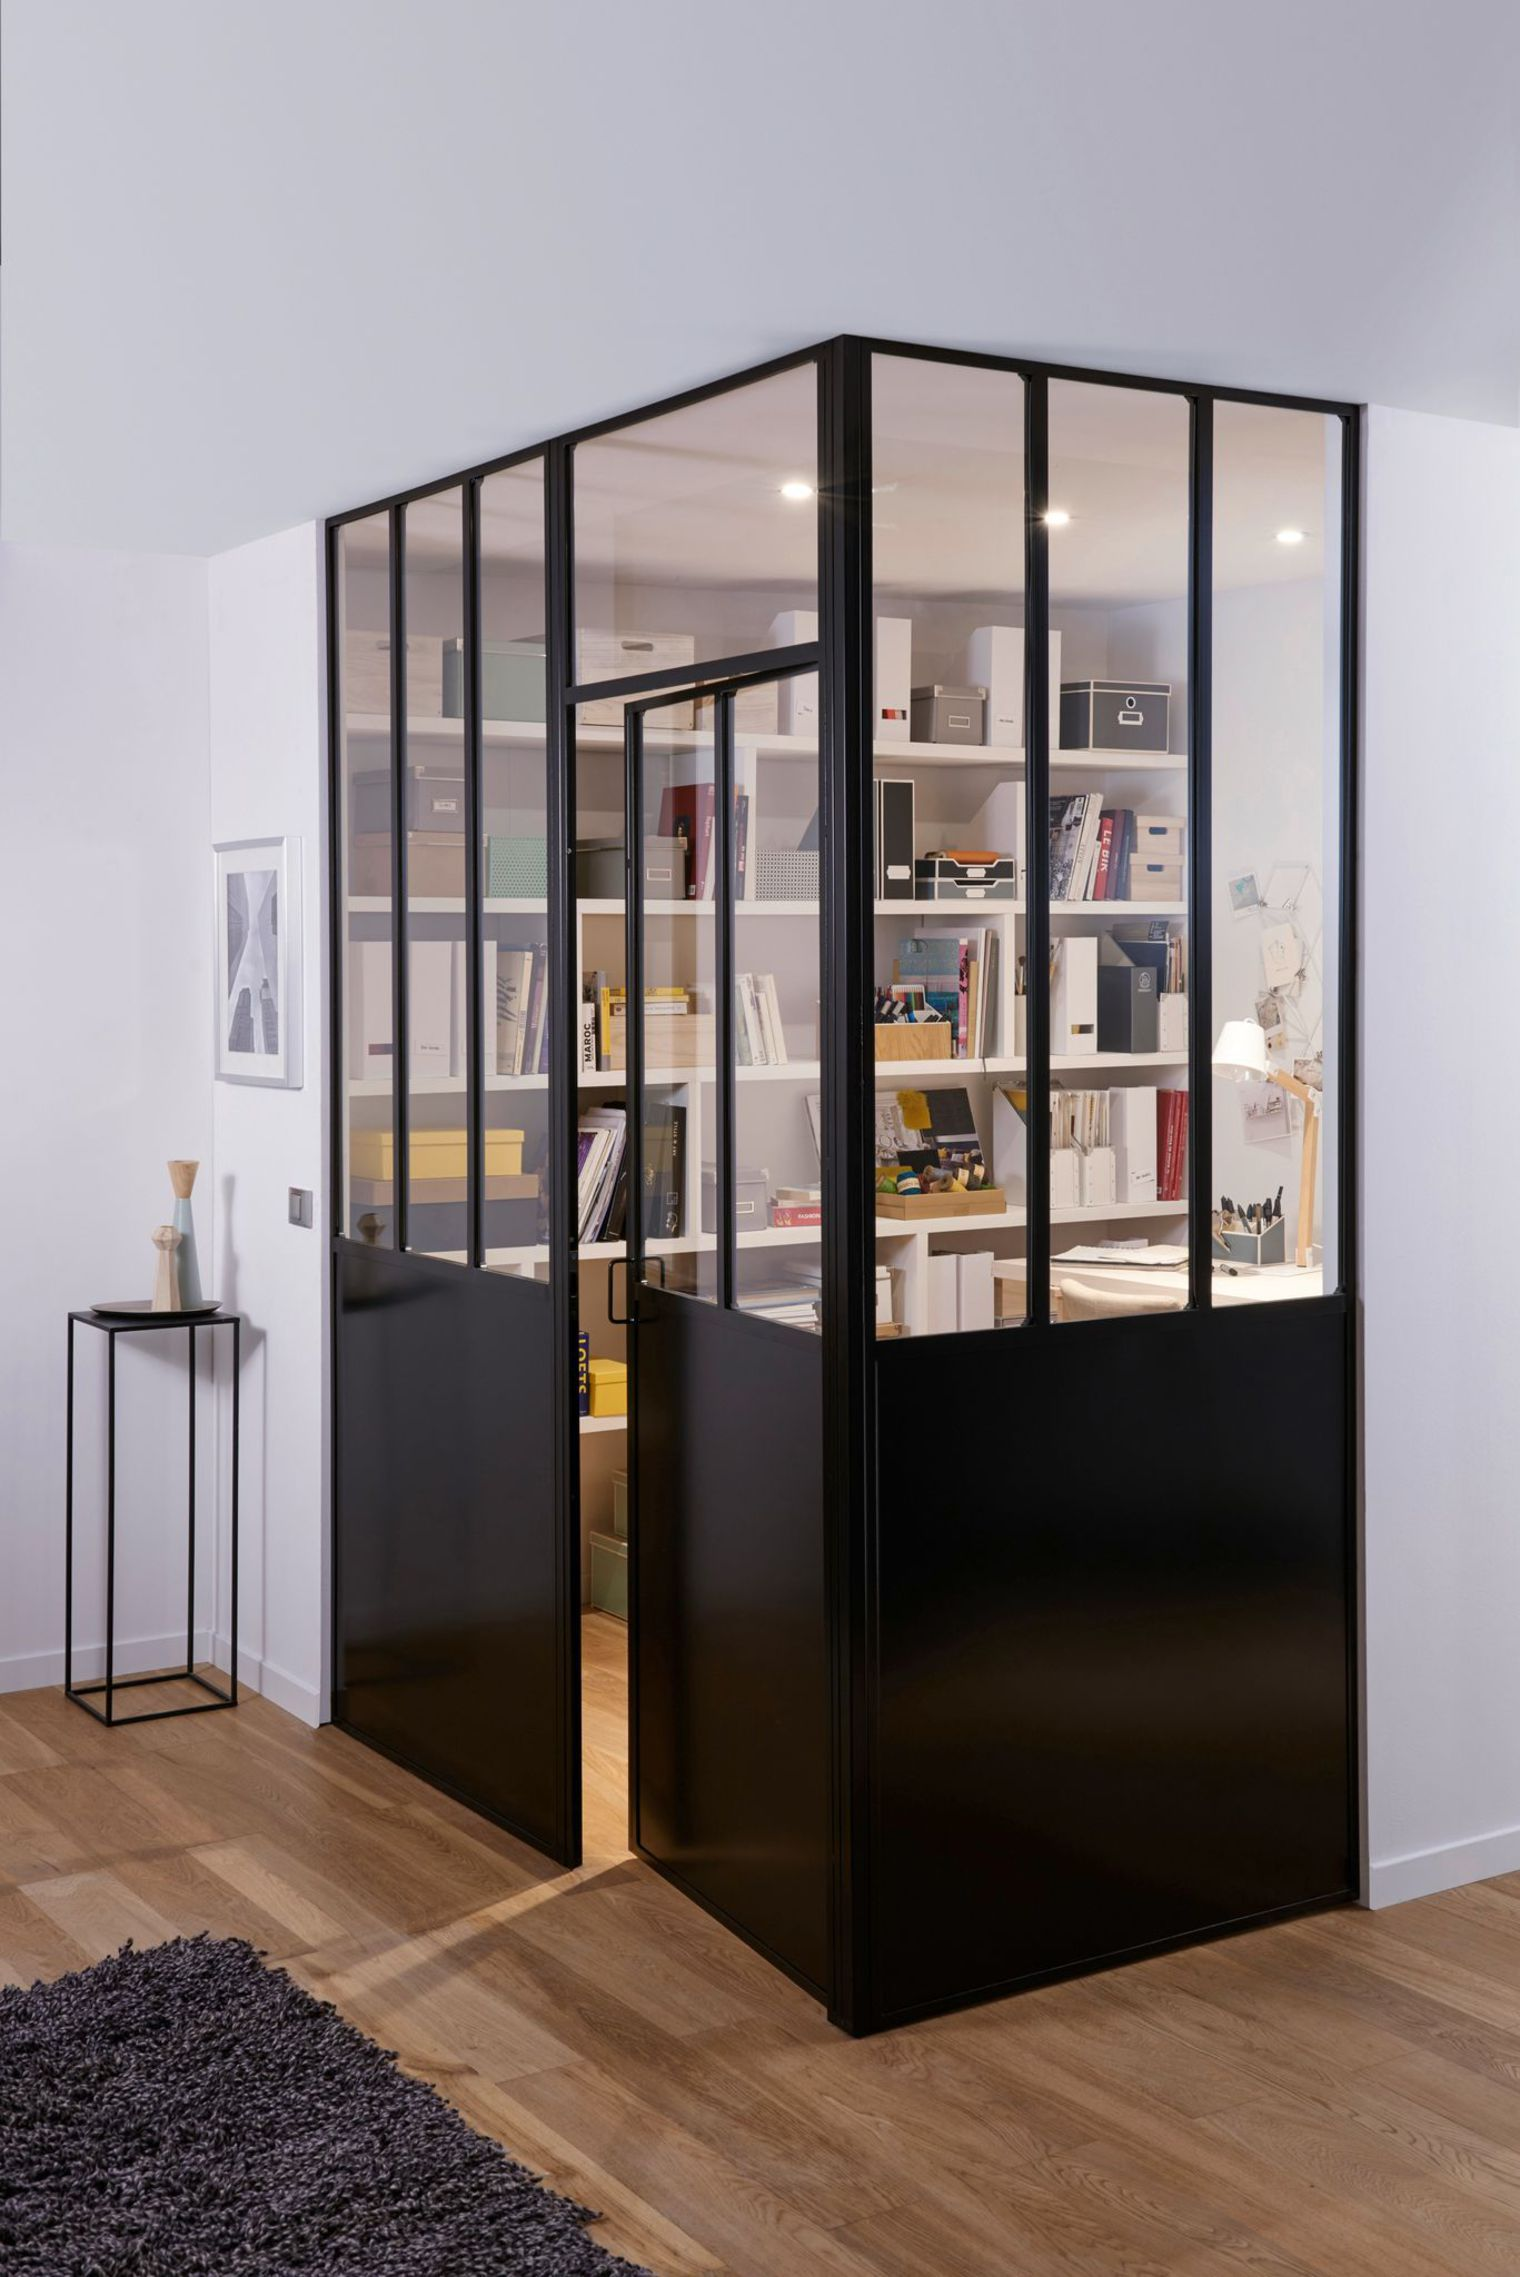 verriere d interieur angle mism architecte interieur interior design pinterest. Black Bedroom Furniture Sets. Home Design Ideas